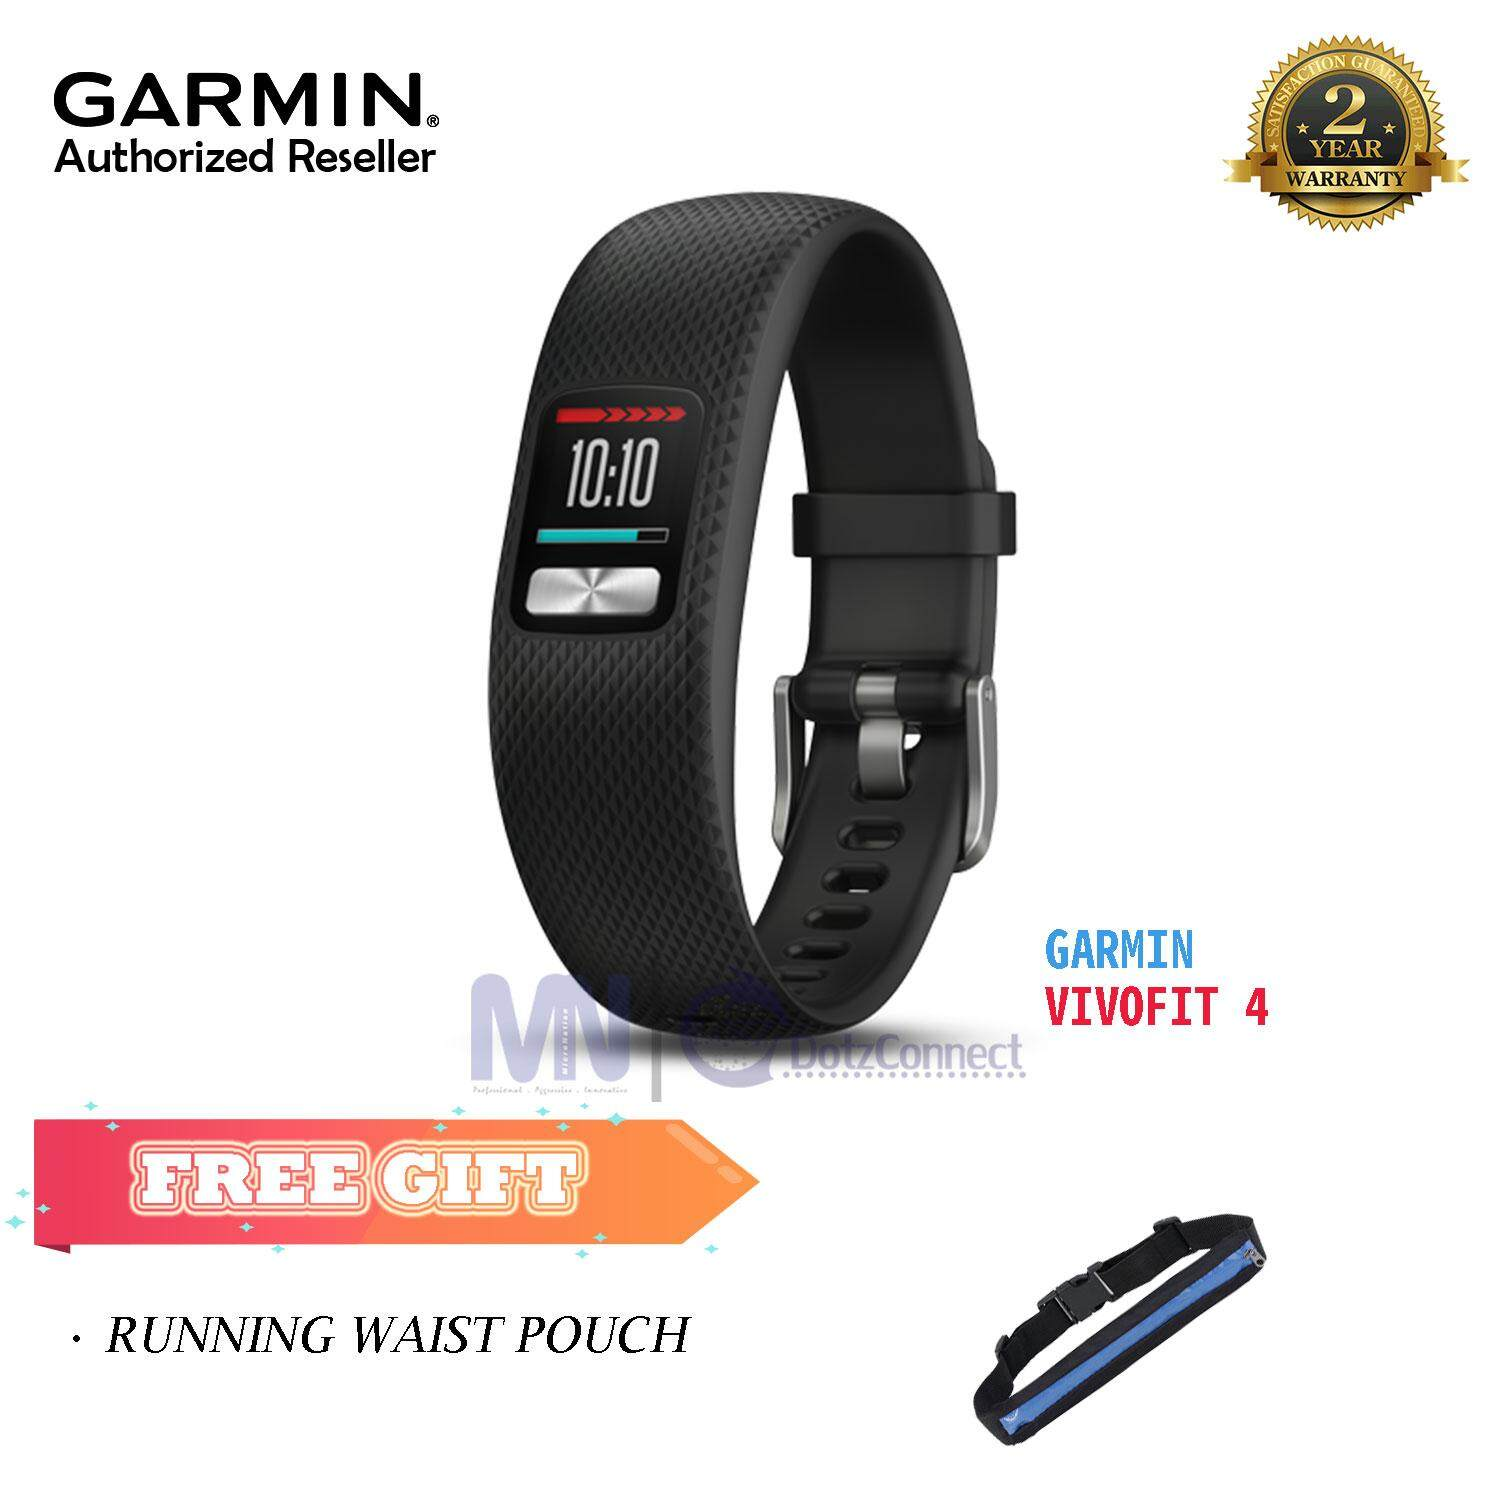 Garmin Vivofit 4 Activity Tracker with 1+ Year Battery Life